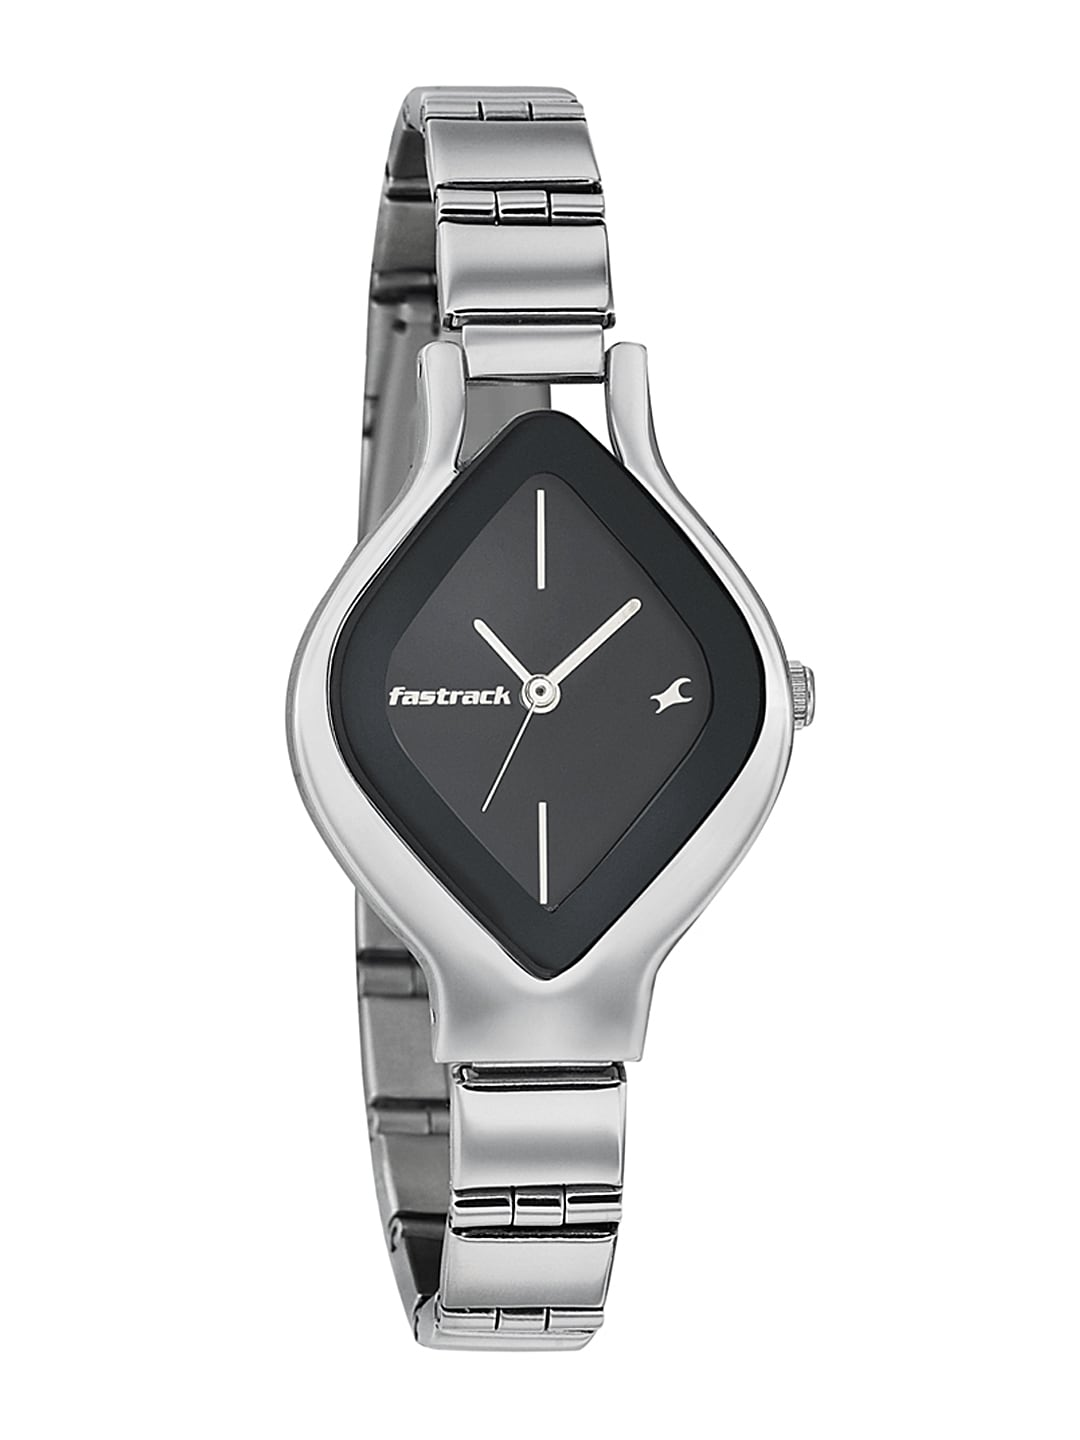 64a951d11a7 Fastrack Watches - Buy Fastrack Watches Online in India